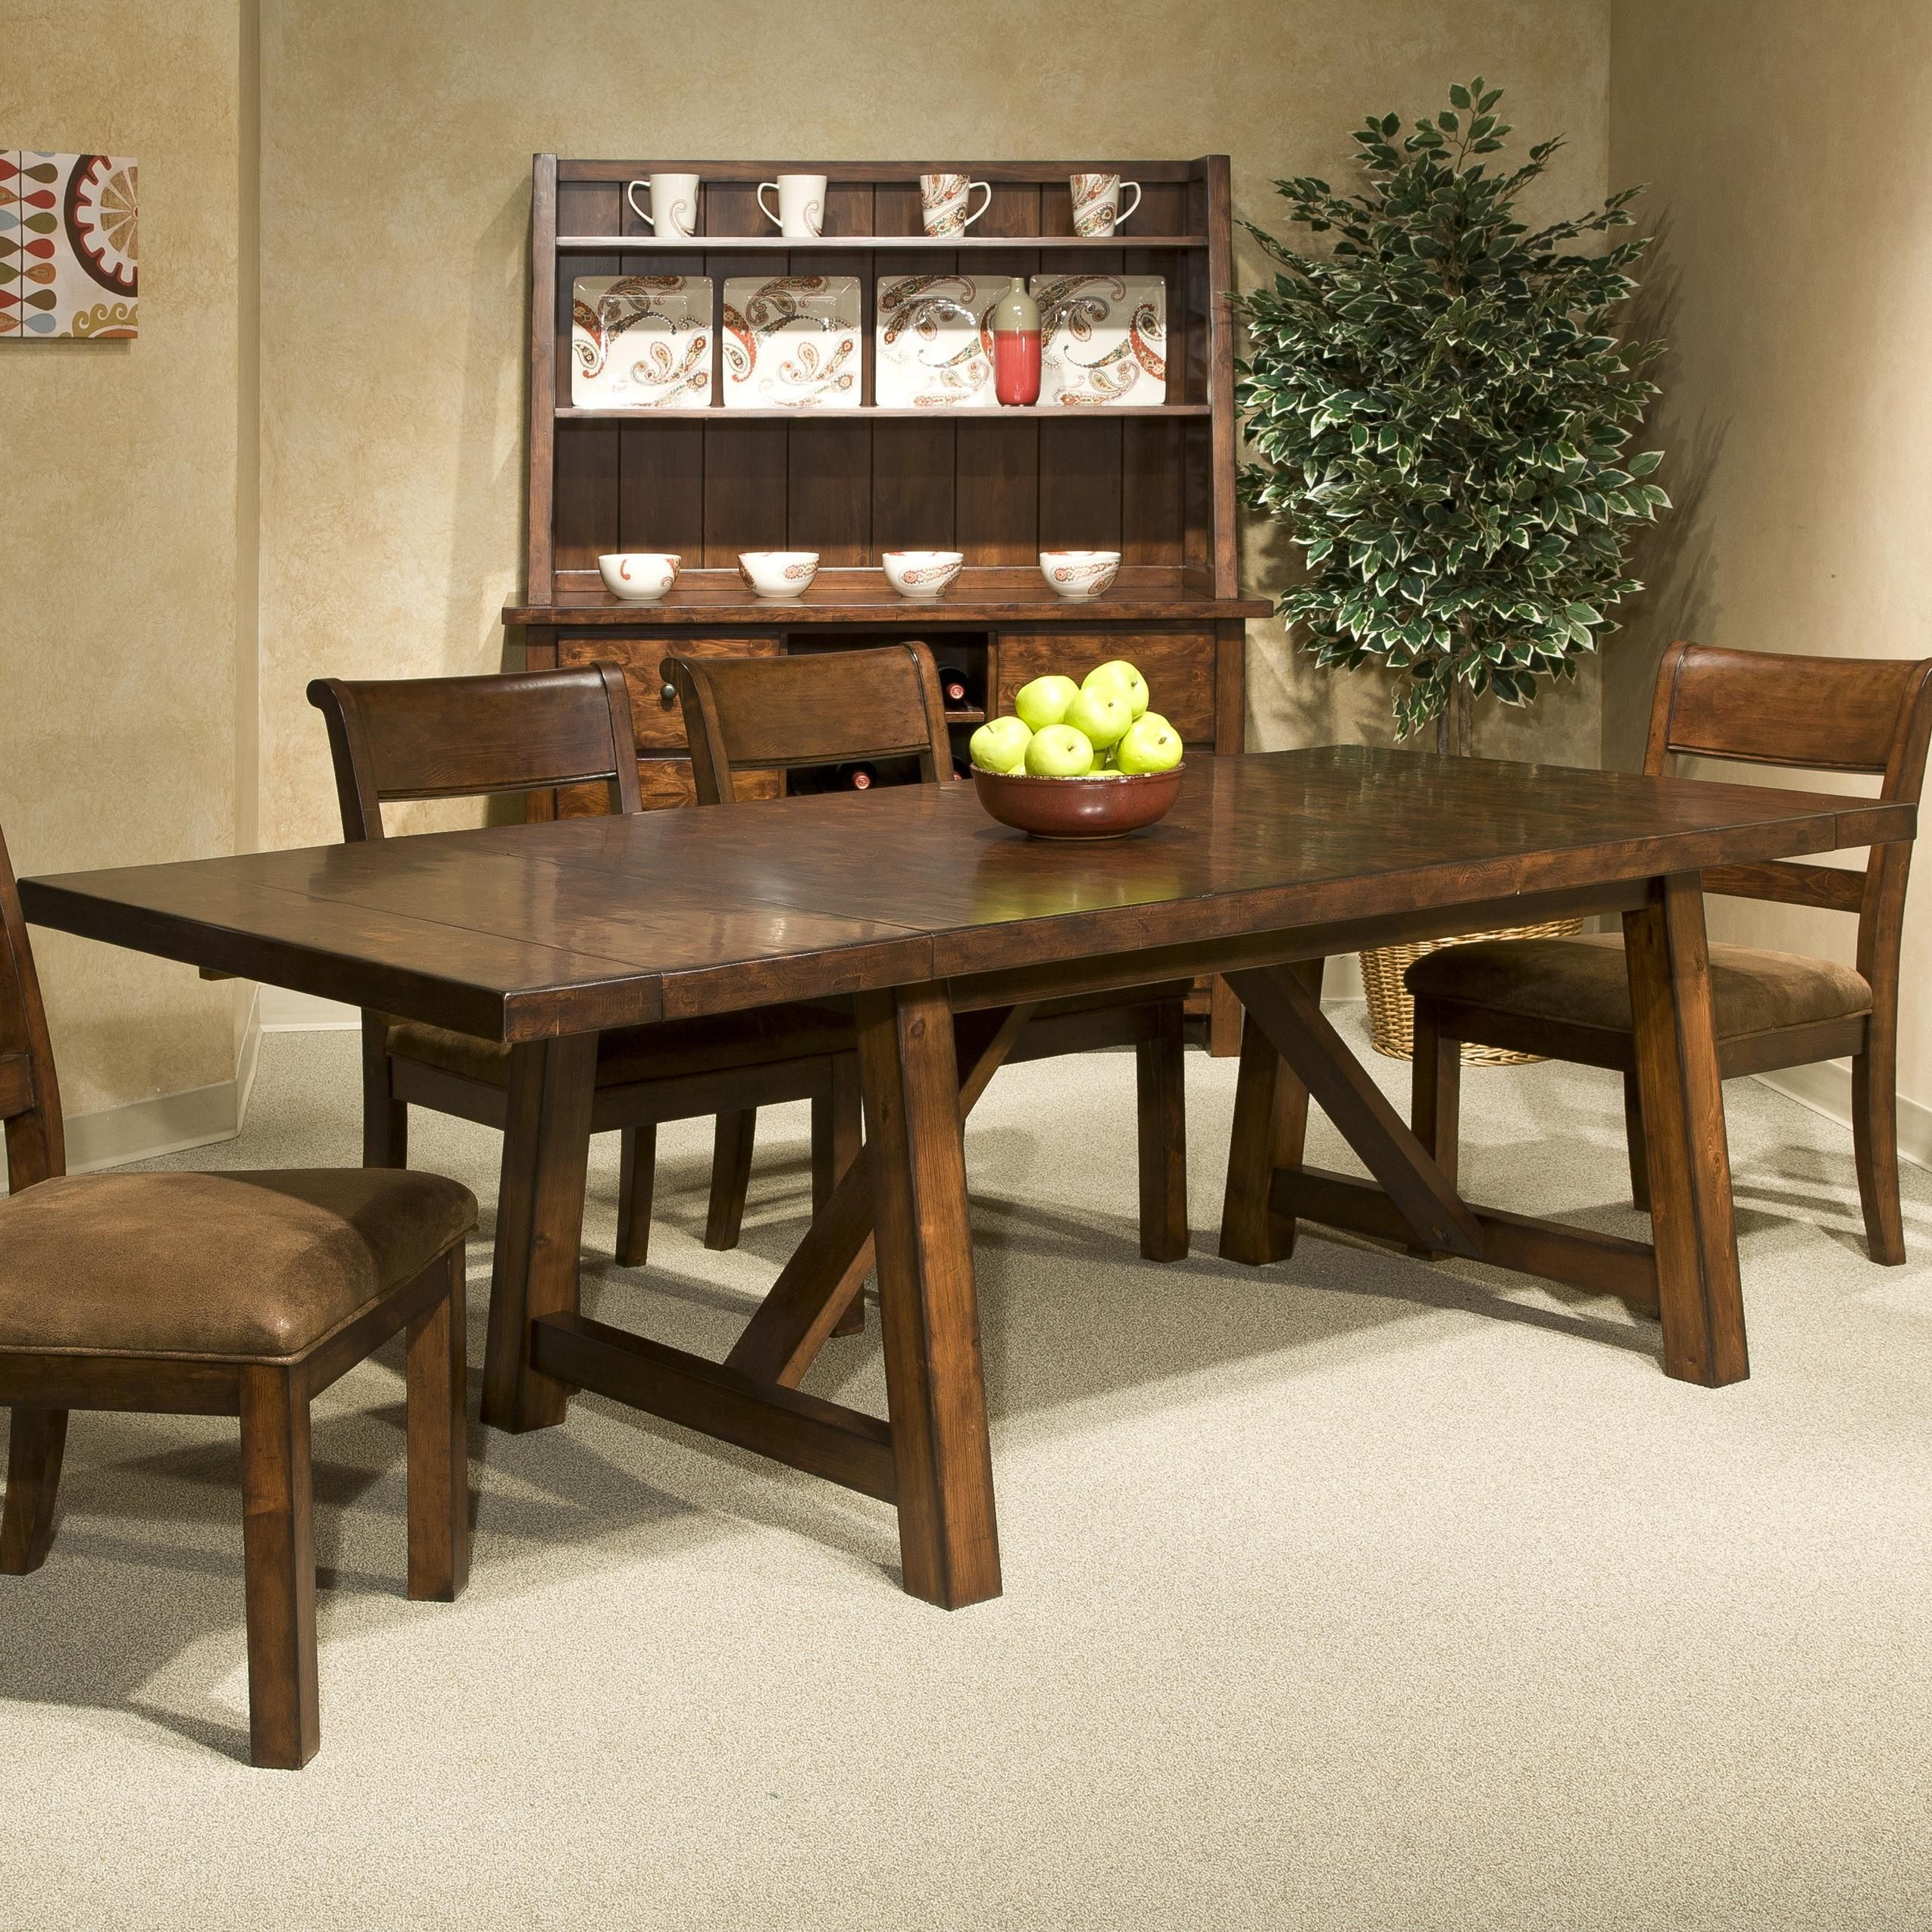 Rectangular Dining Table With Bench: Bench Creek Rectangular Trestle Dining Table By Intercon